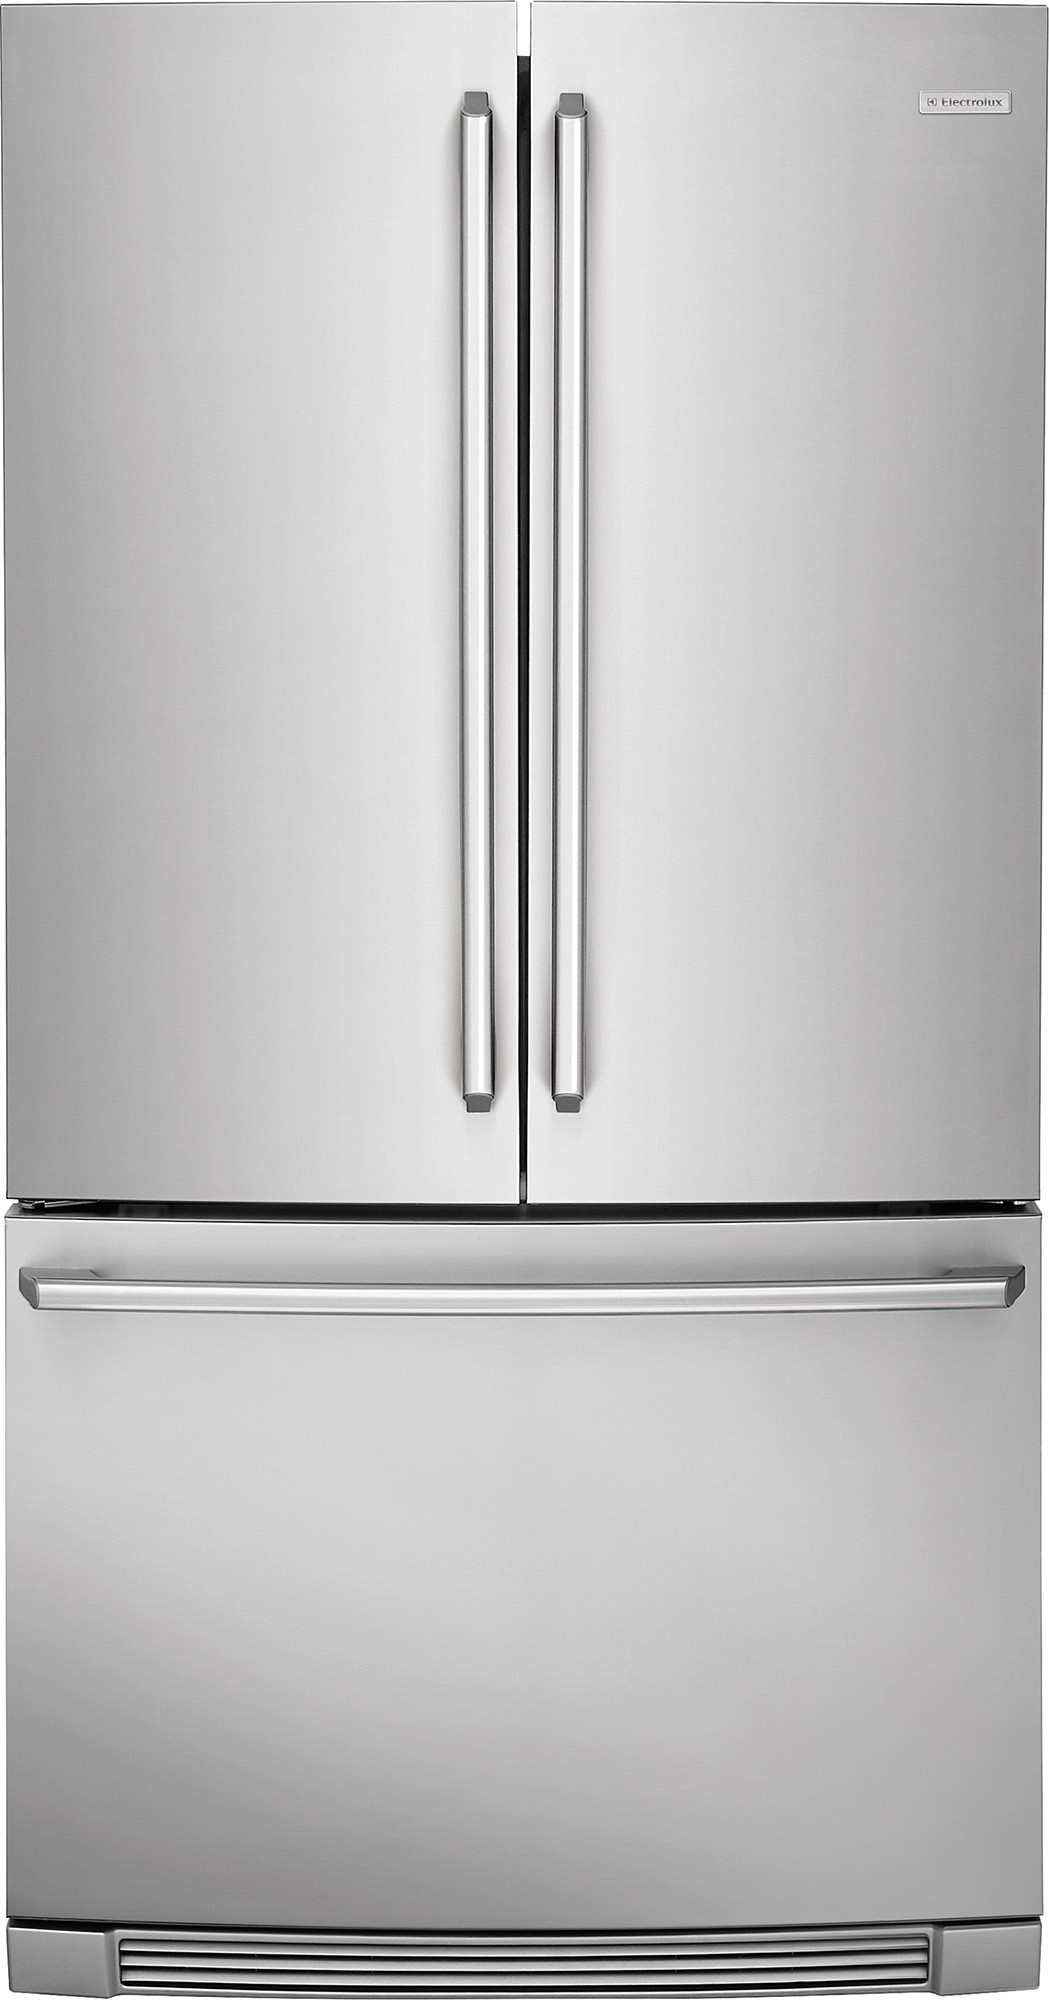 Best Counter Depth Refrigerator 2015 >> Electrolux Iq Touch Series Ei23bc82ss